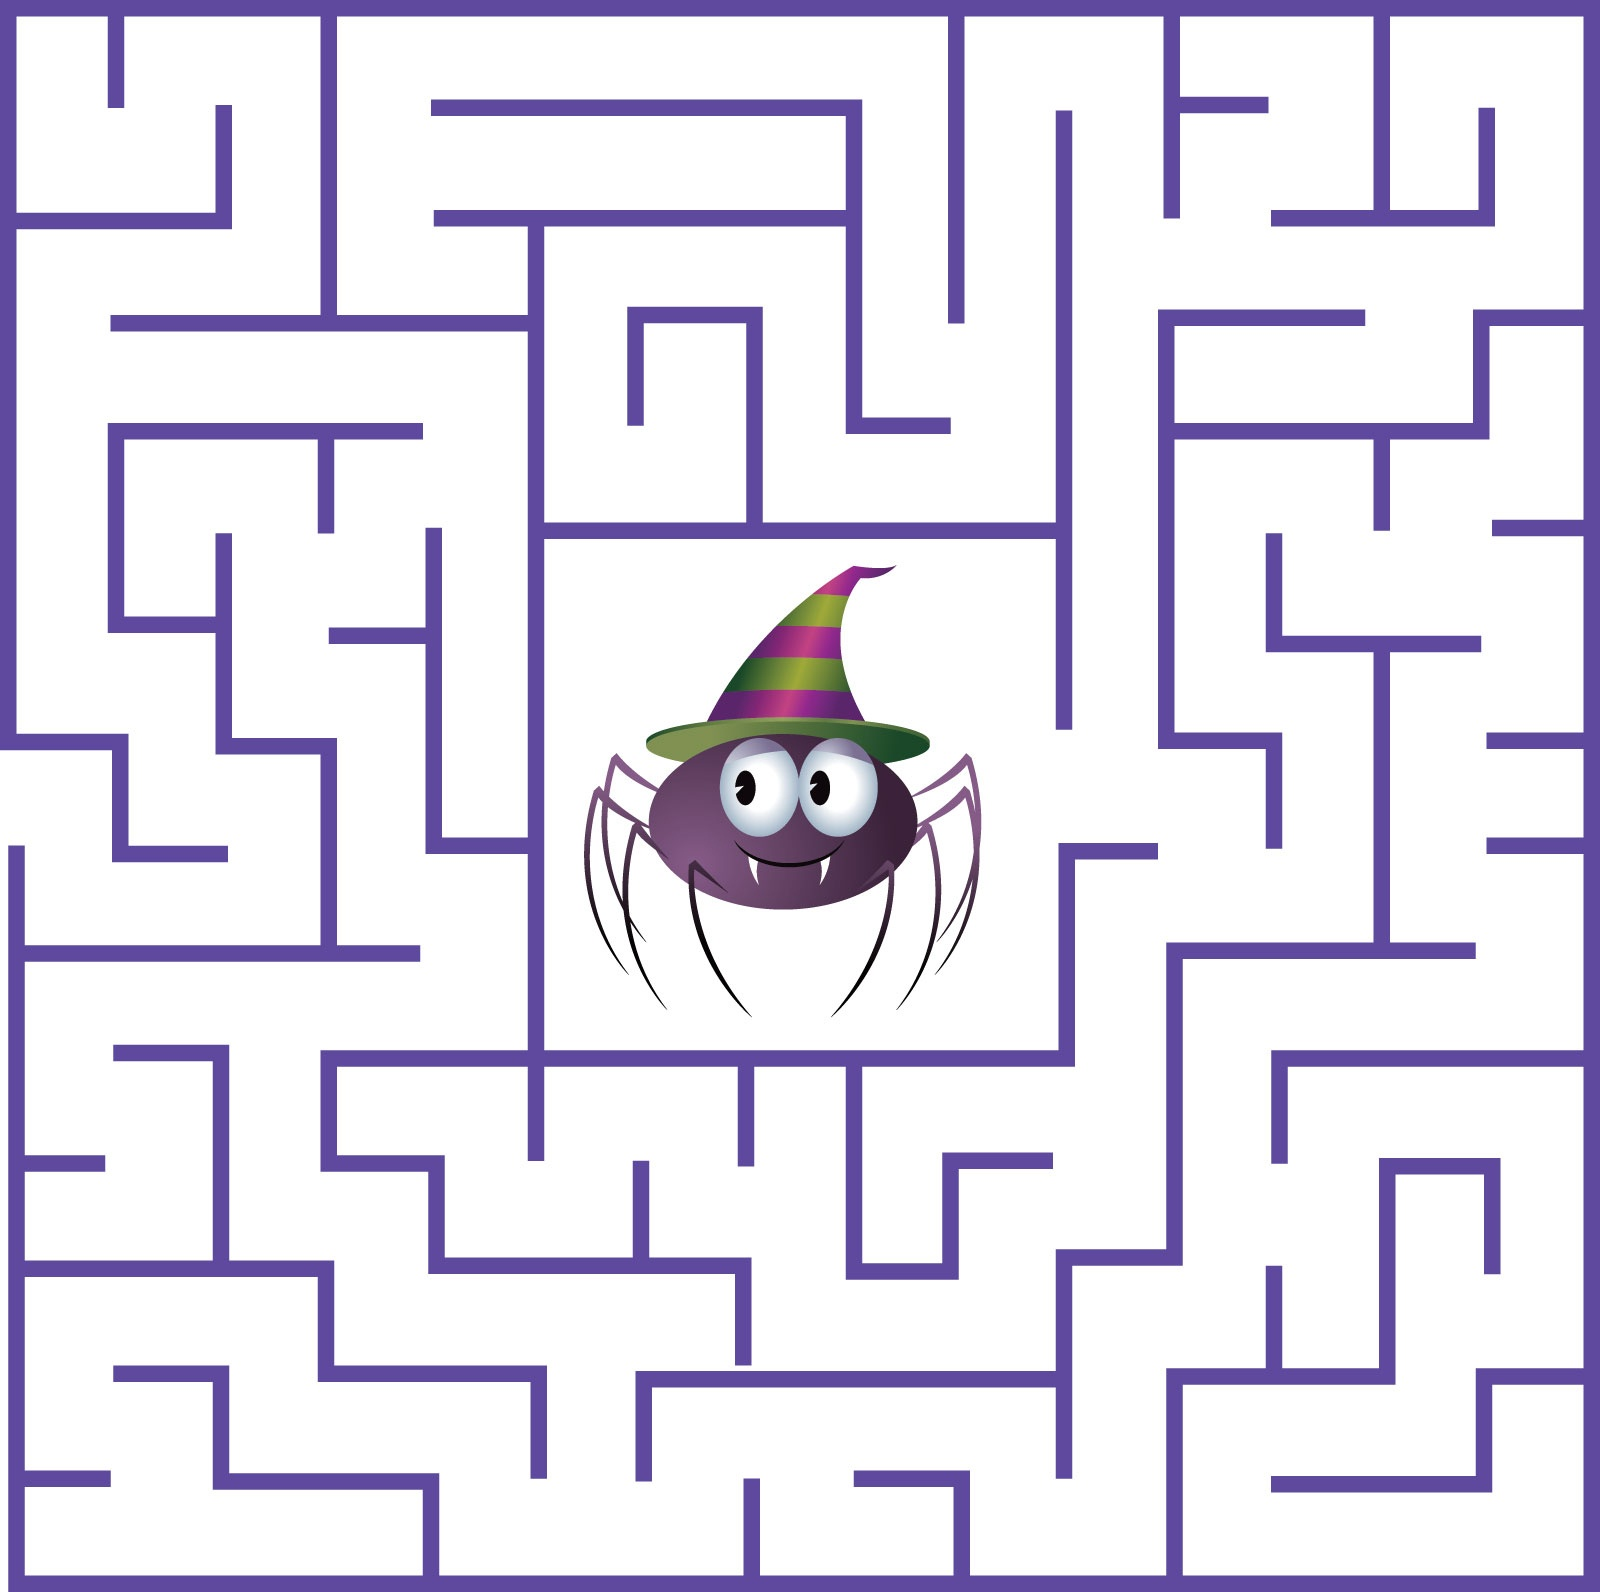 28 Free Printable Mazes For Kids And Adults | Kittybabylove - Free Printable Mazes For Kids